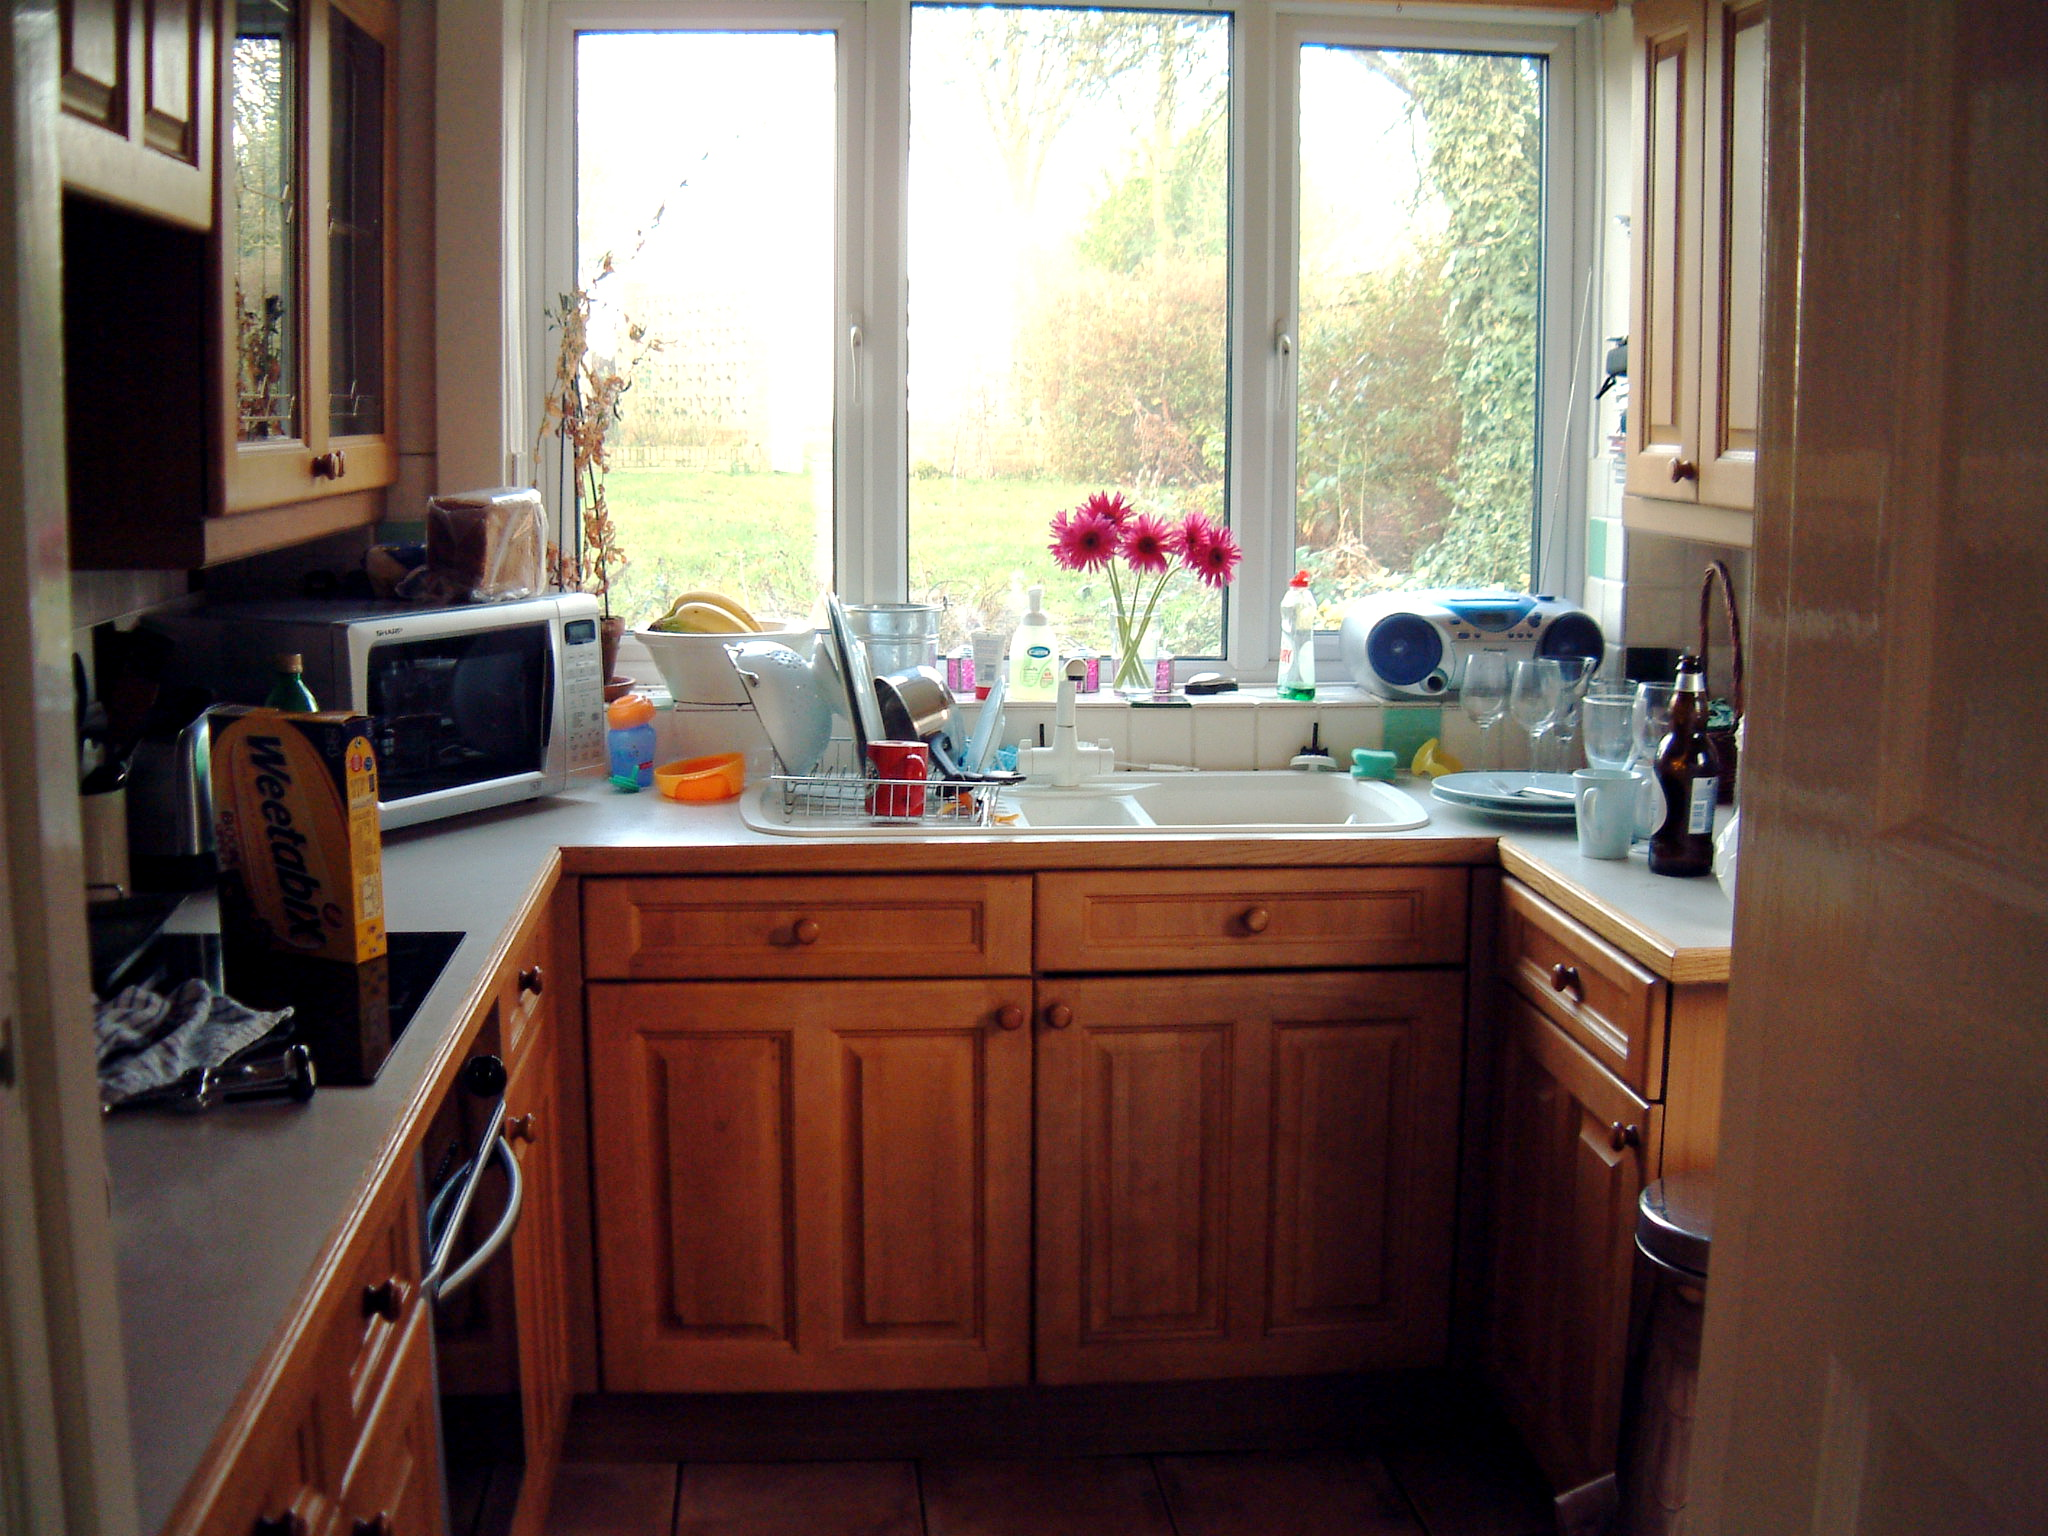 Space saving tips for small kitchens interior designing for Small kitchen cabinets